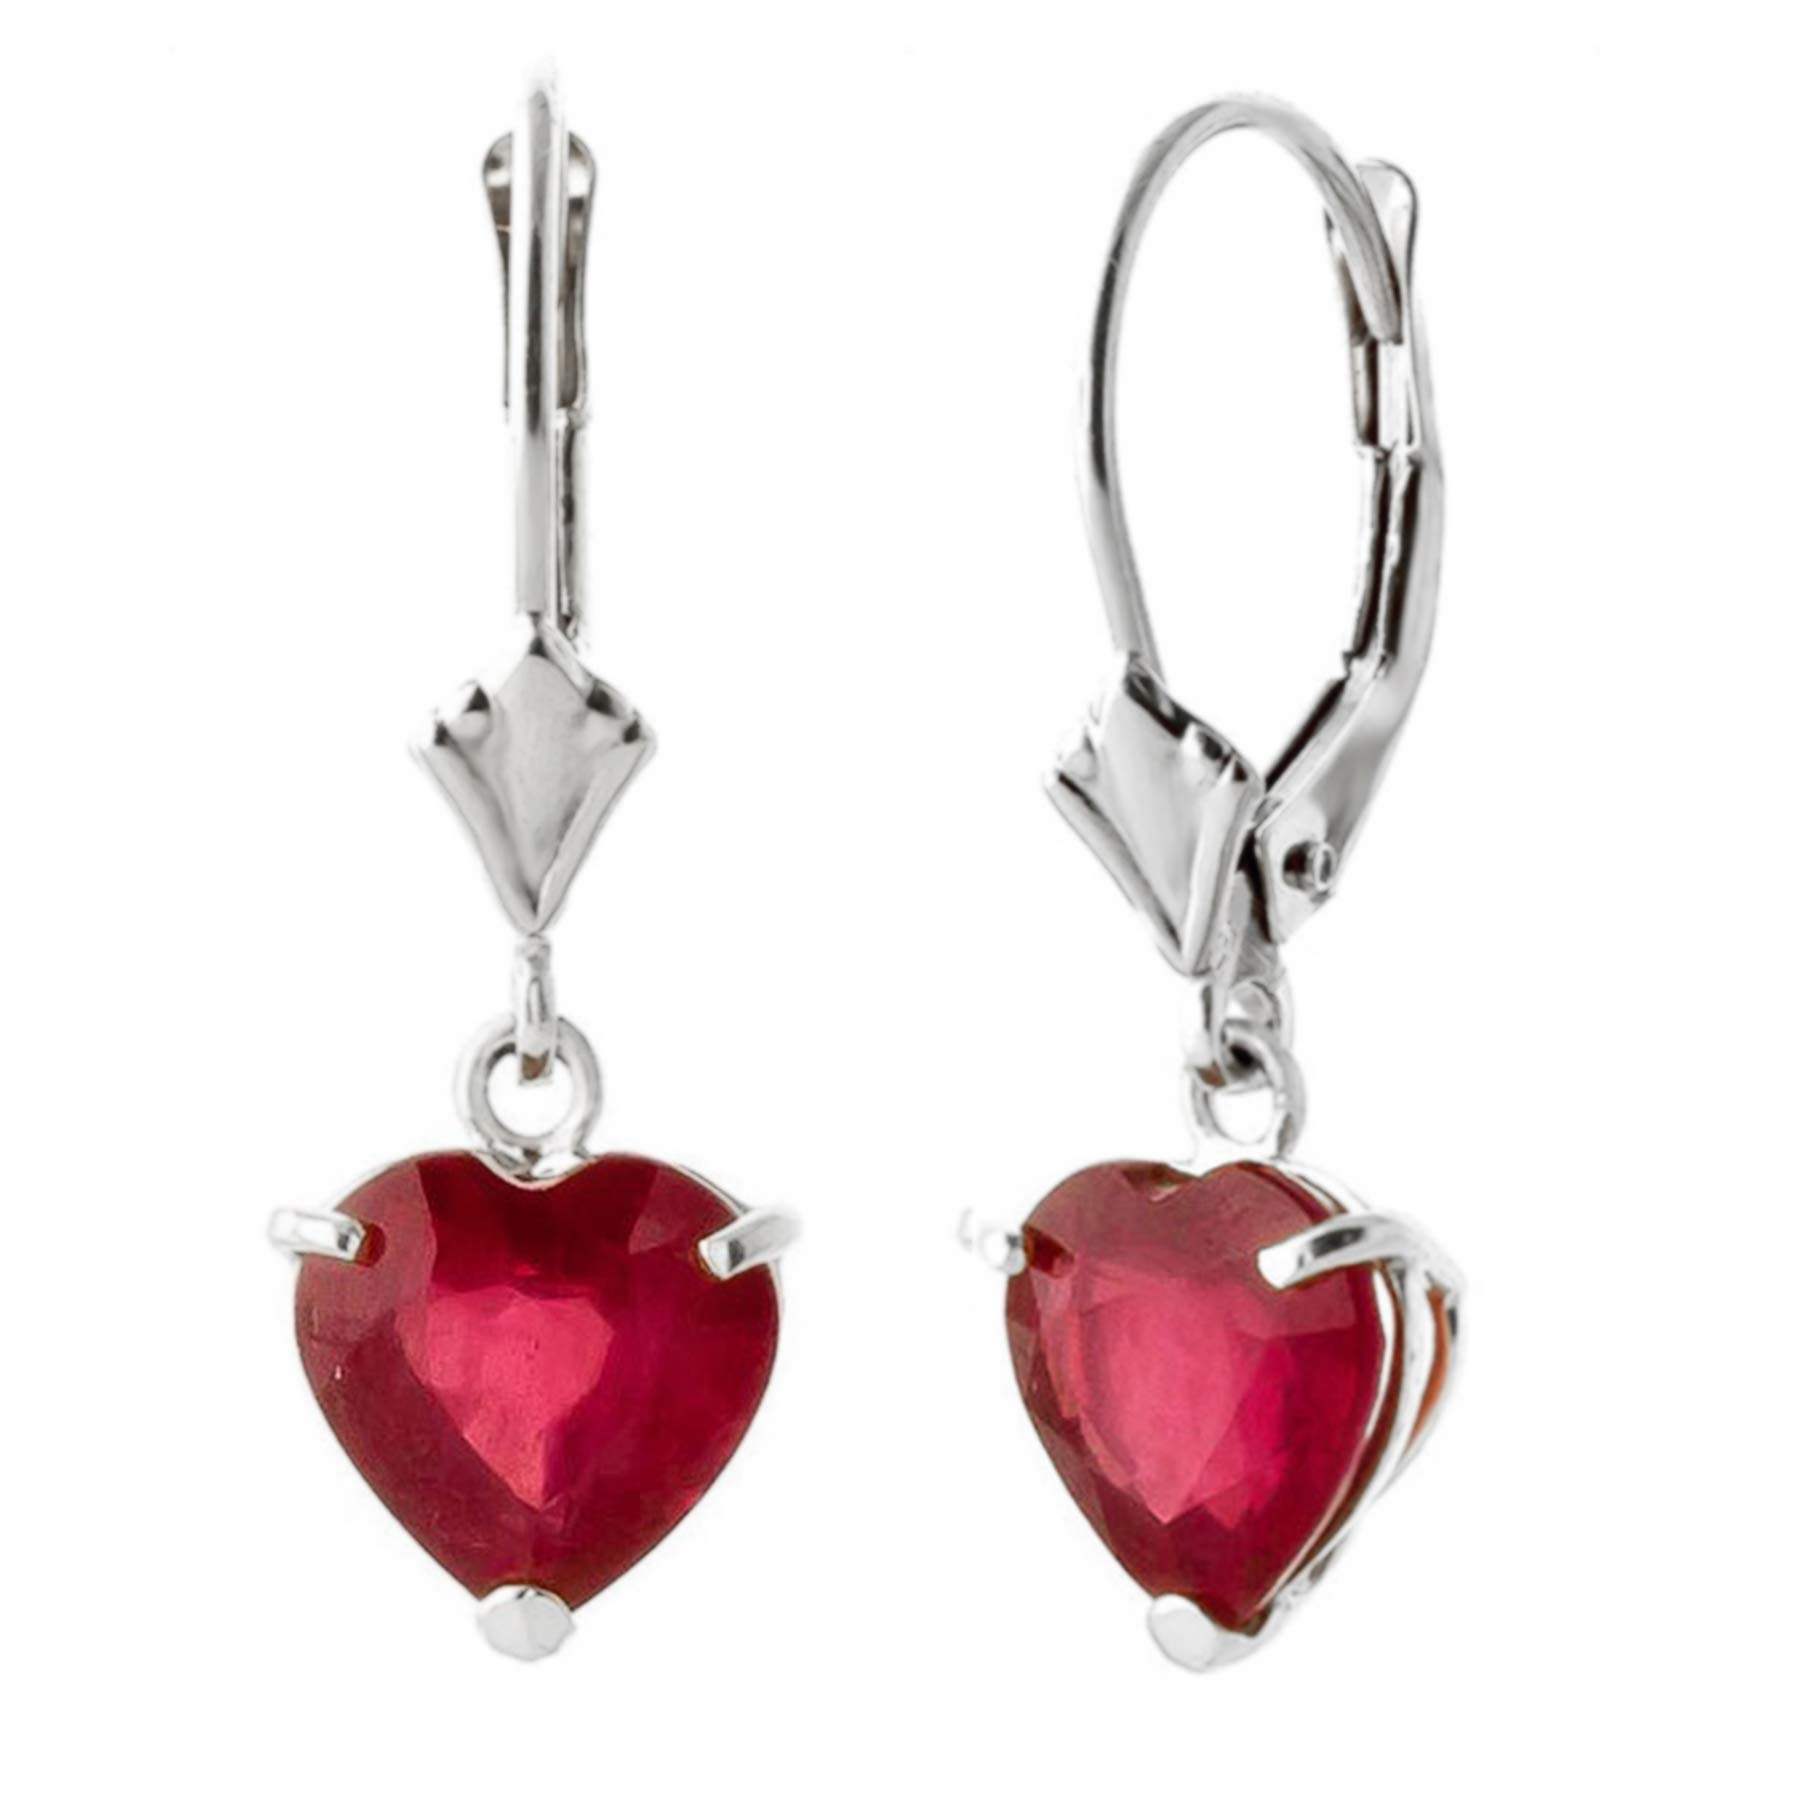 2.9 CTW 14k Solid White Gold Leverback Earrings with Natural Heart-shaped Ruby